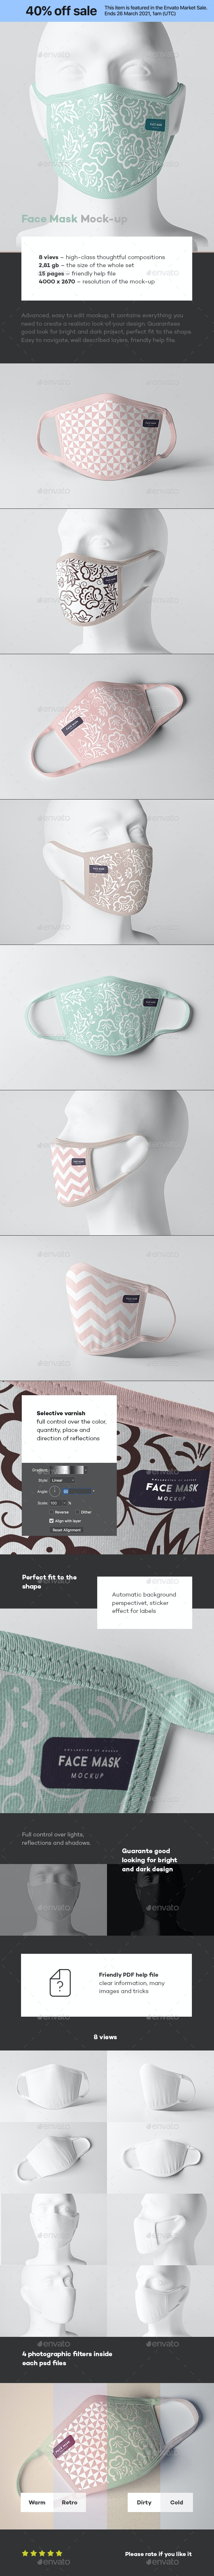 Face Mask Mock-up - Miscellaneous Apparel